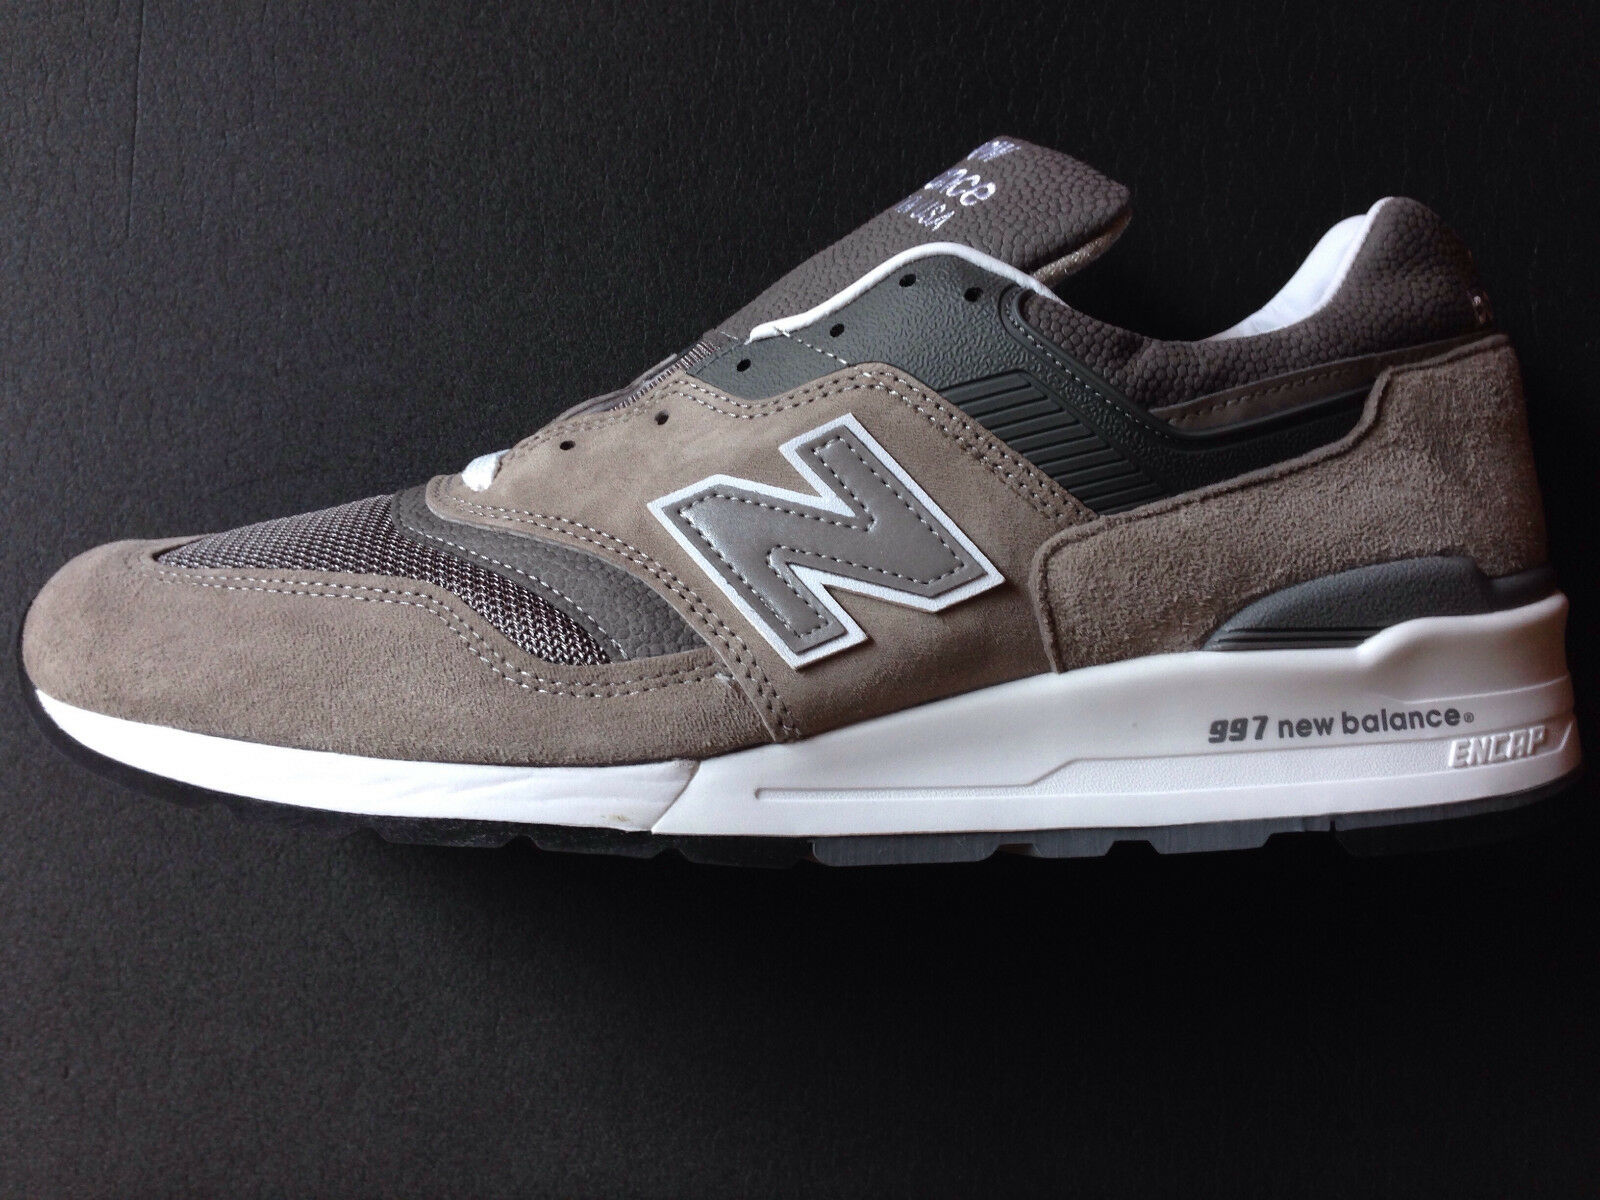 New balance m997gy2 997 2015 vintage CW made in usa new US 12